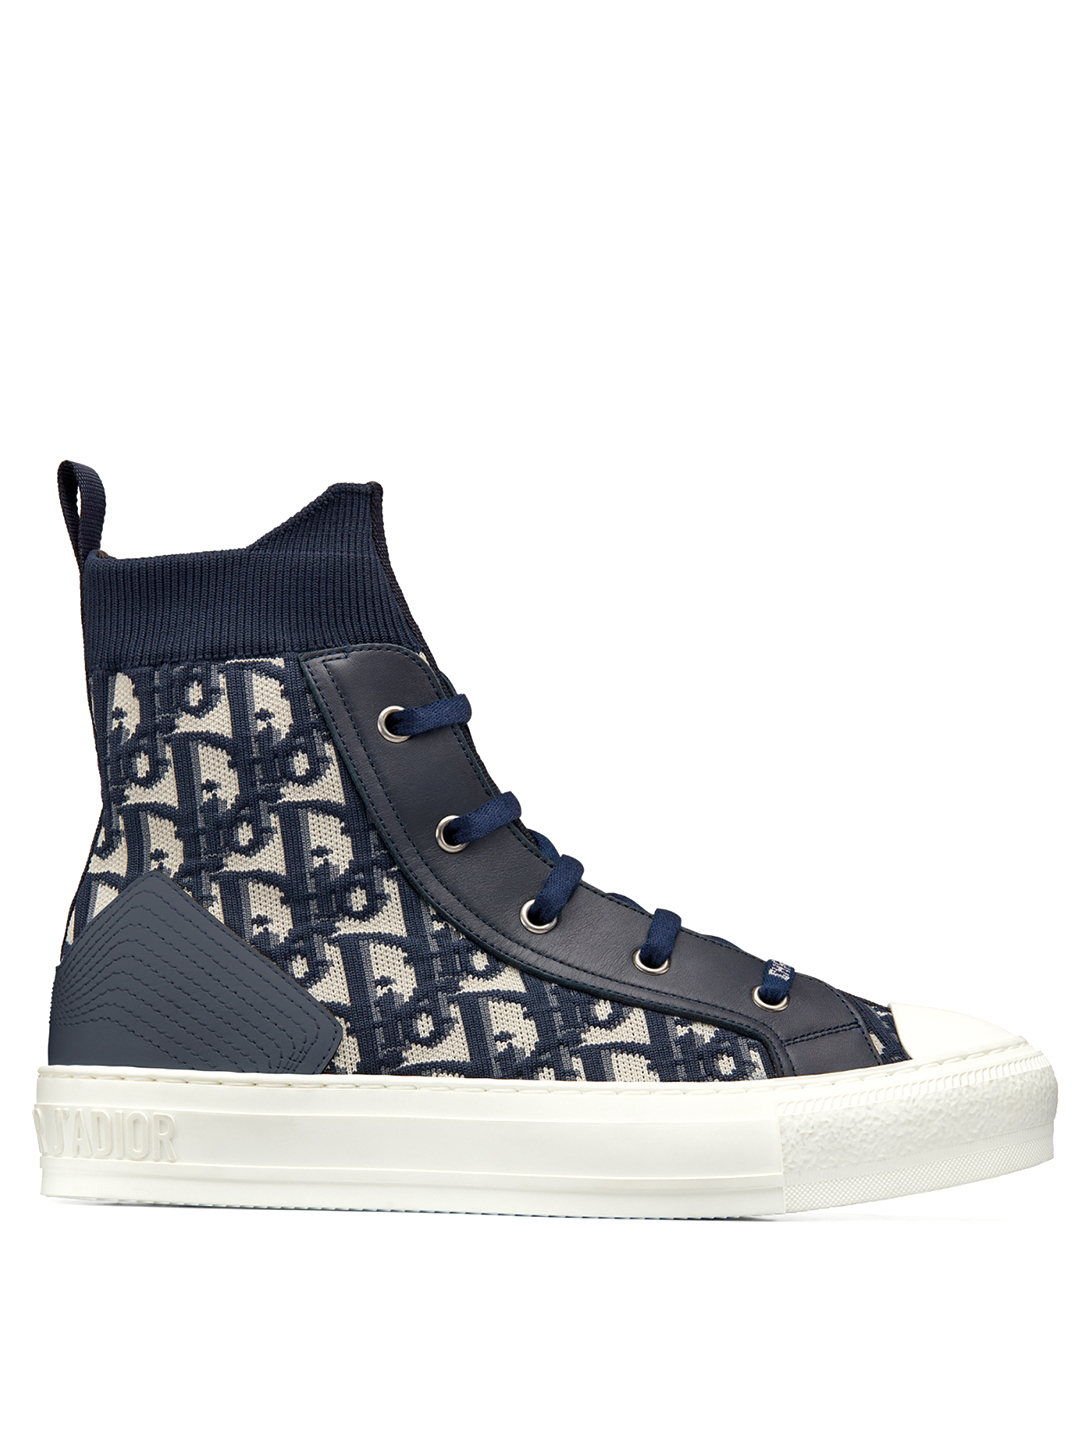 DIOR Walk'N'Dior Dior Oblique Technical Knit High-Top Sneakers Women's Blue